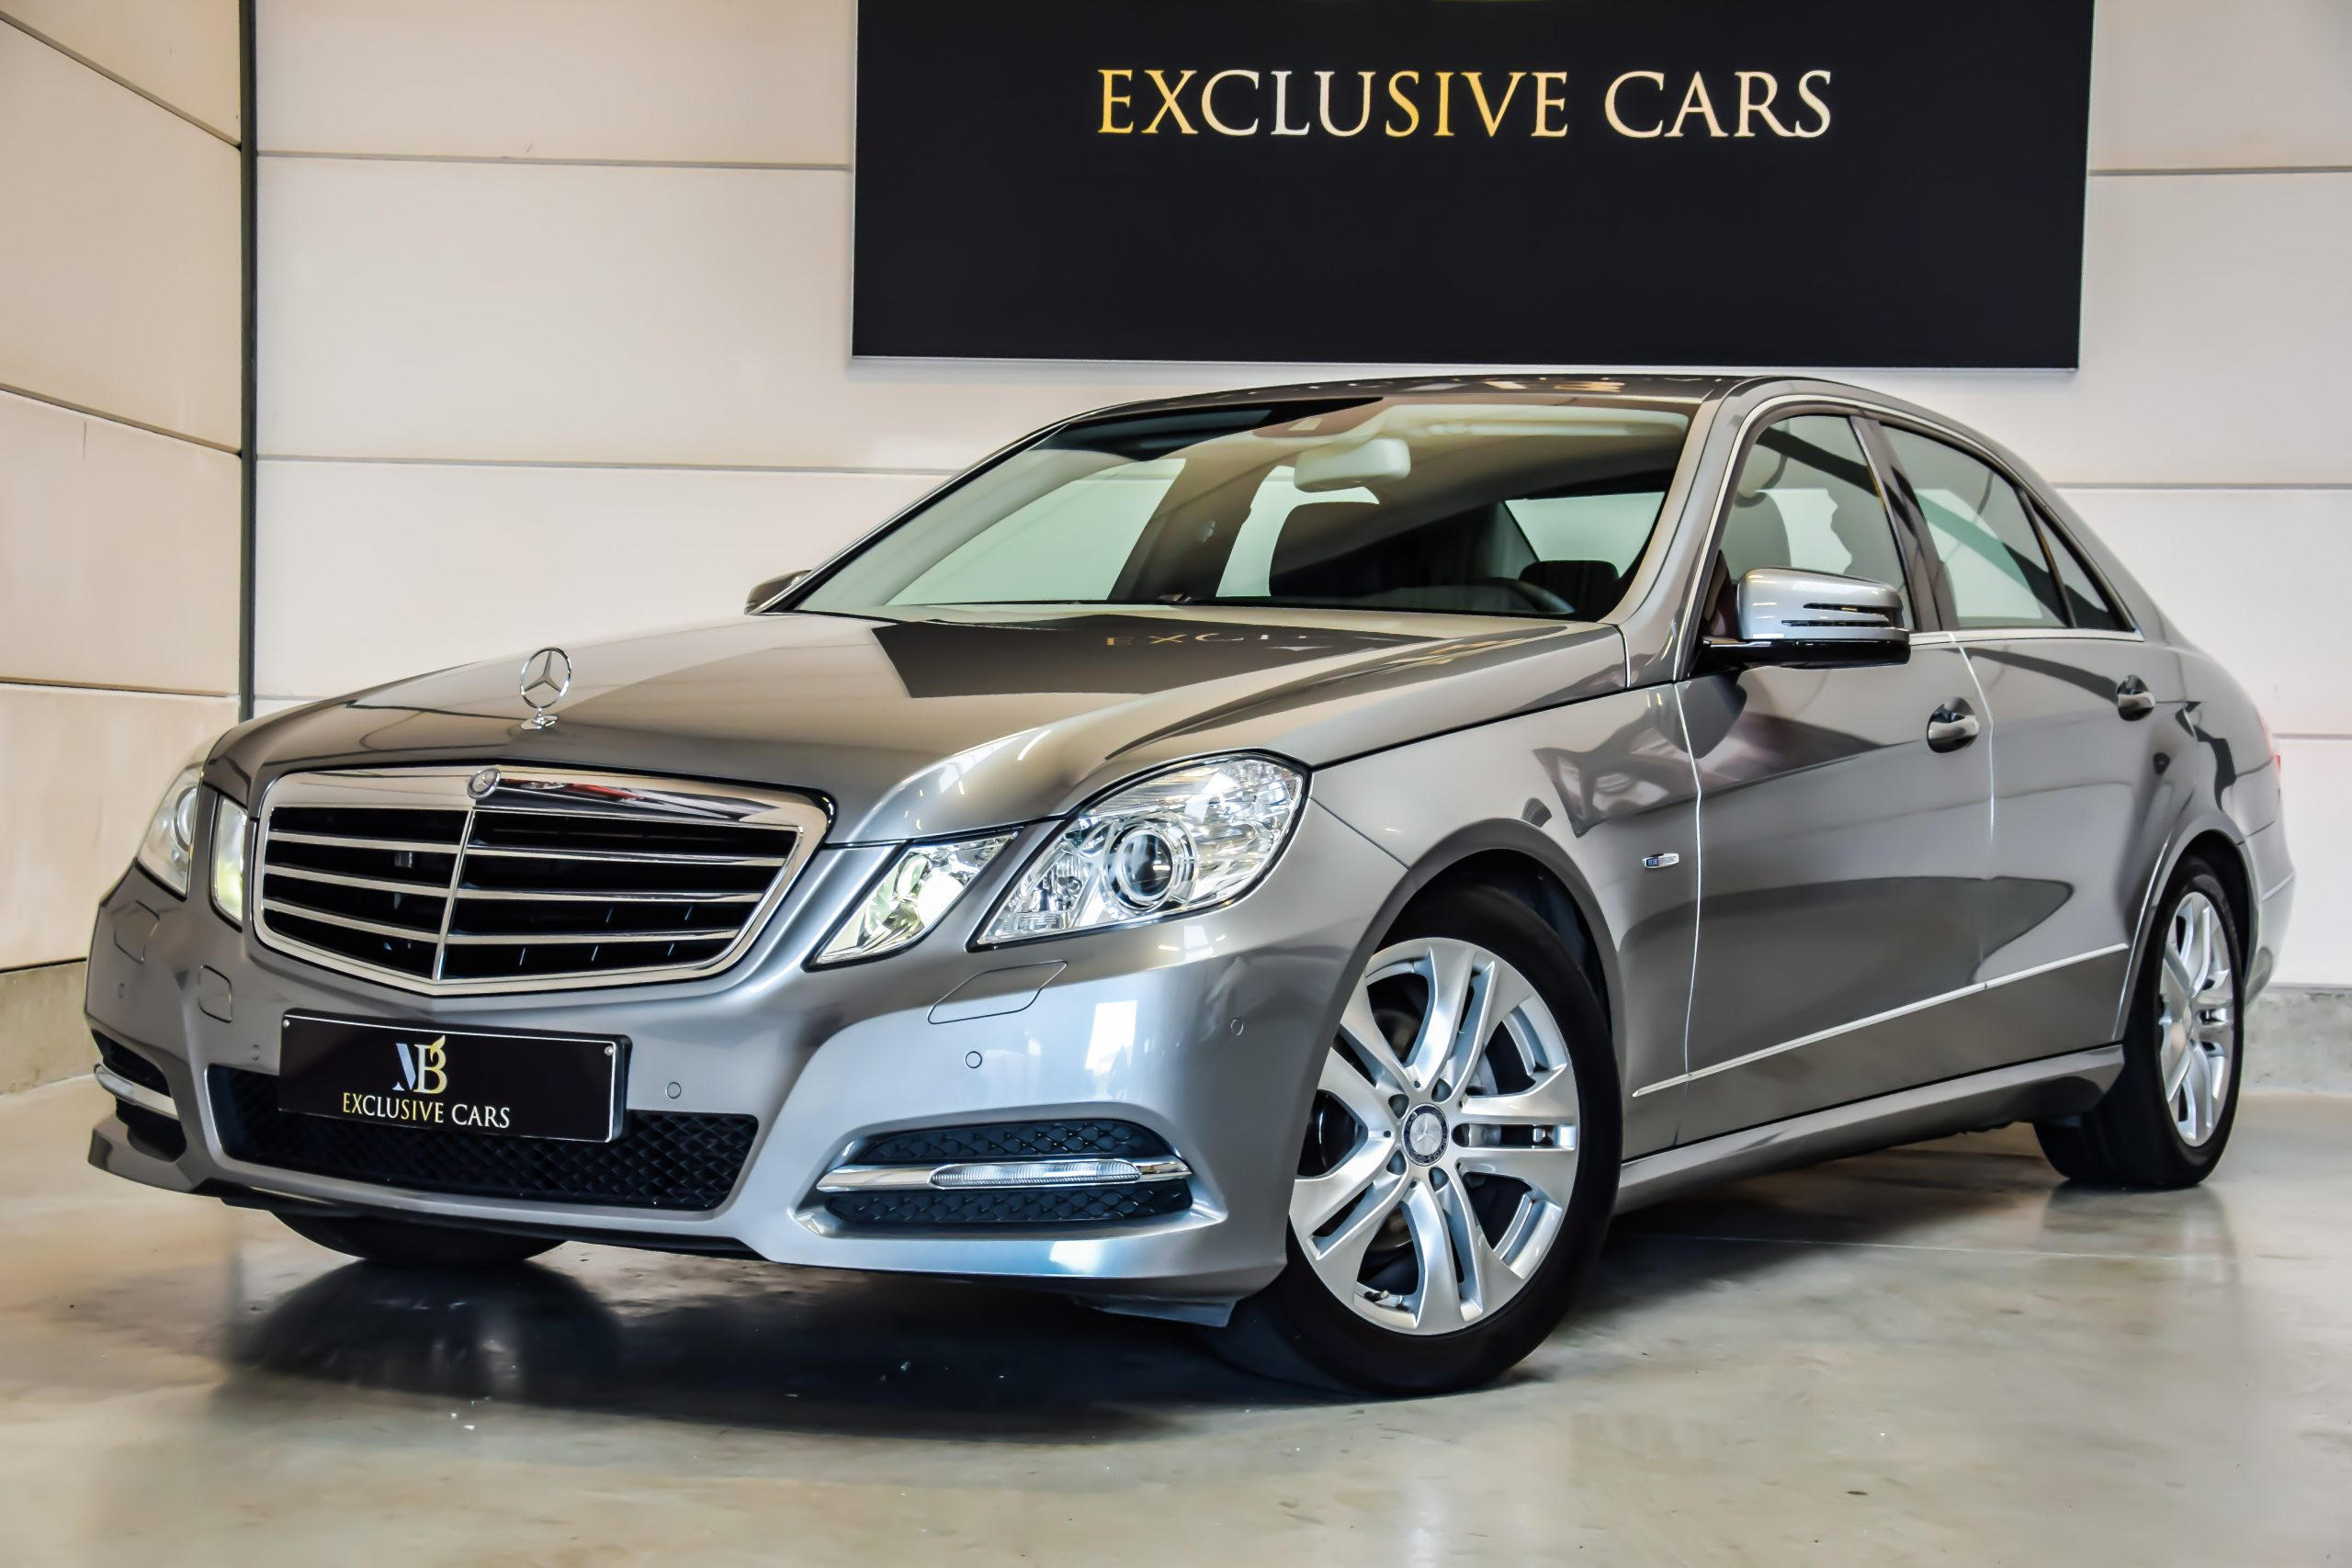 Mercedes-Benz E200 CDI Avantgarde BlueEfficiency 04/2011 -Full Option!!